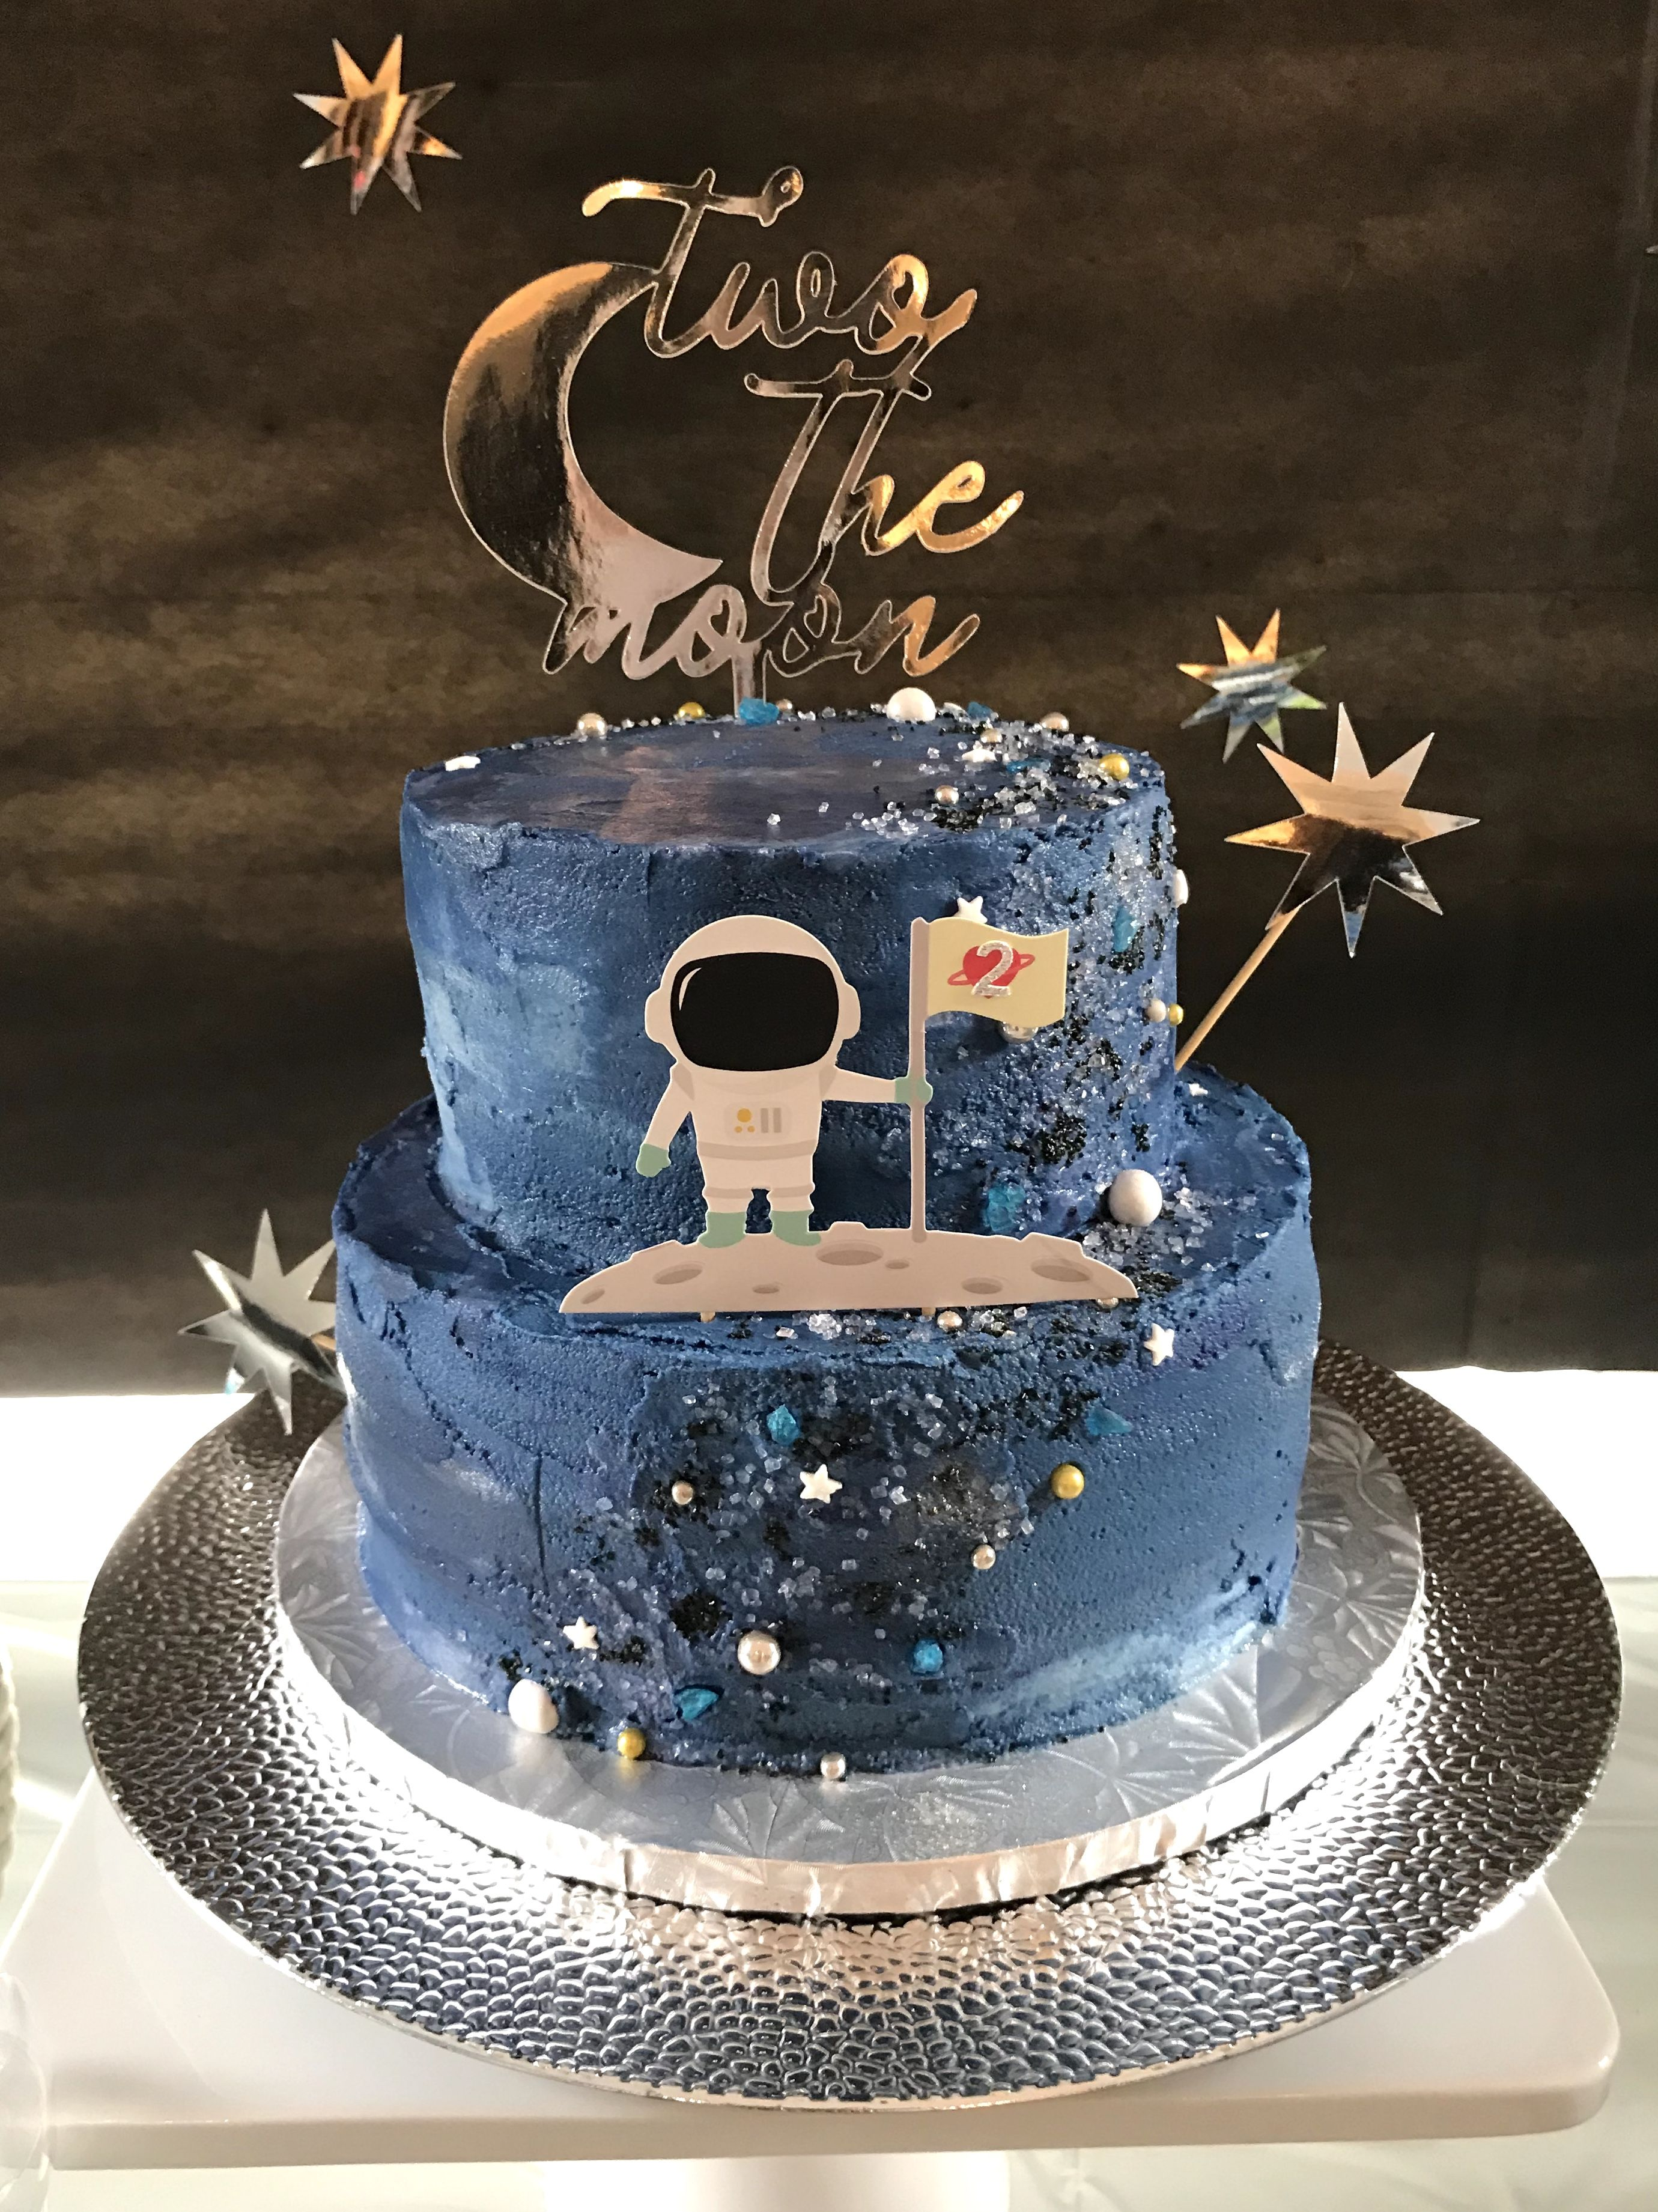 Stupendous Two The Moon Birthday Party Space Galaxy Cake With Cake Toppers Personalised Birthday Cards Cominlily Jamesorg